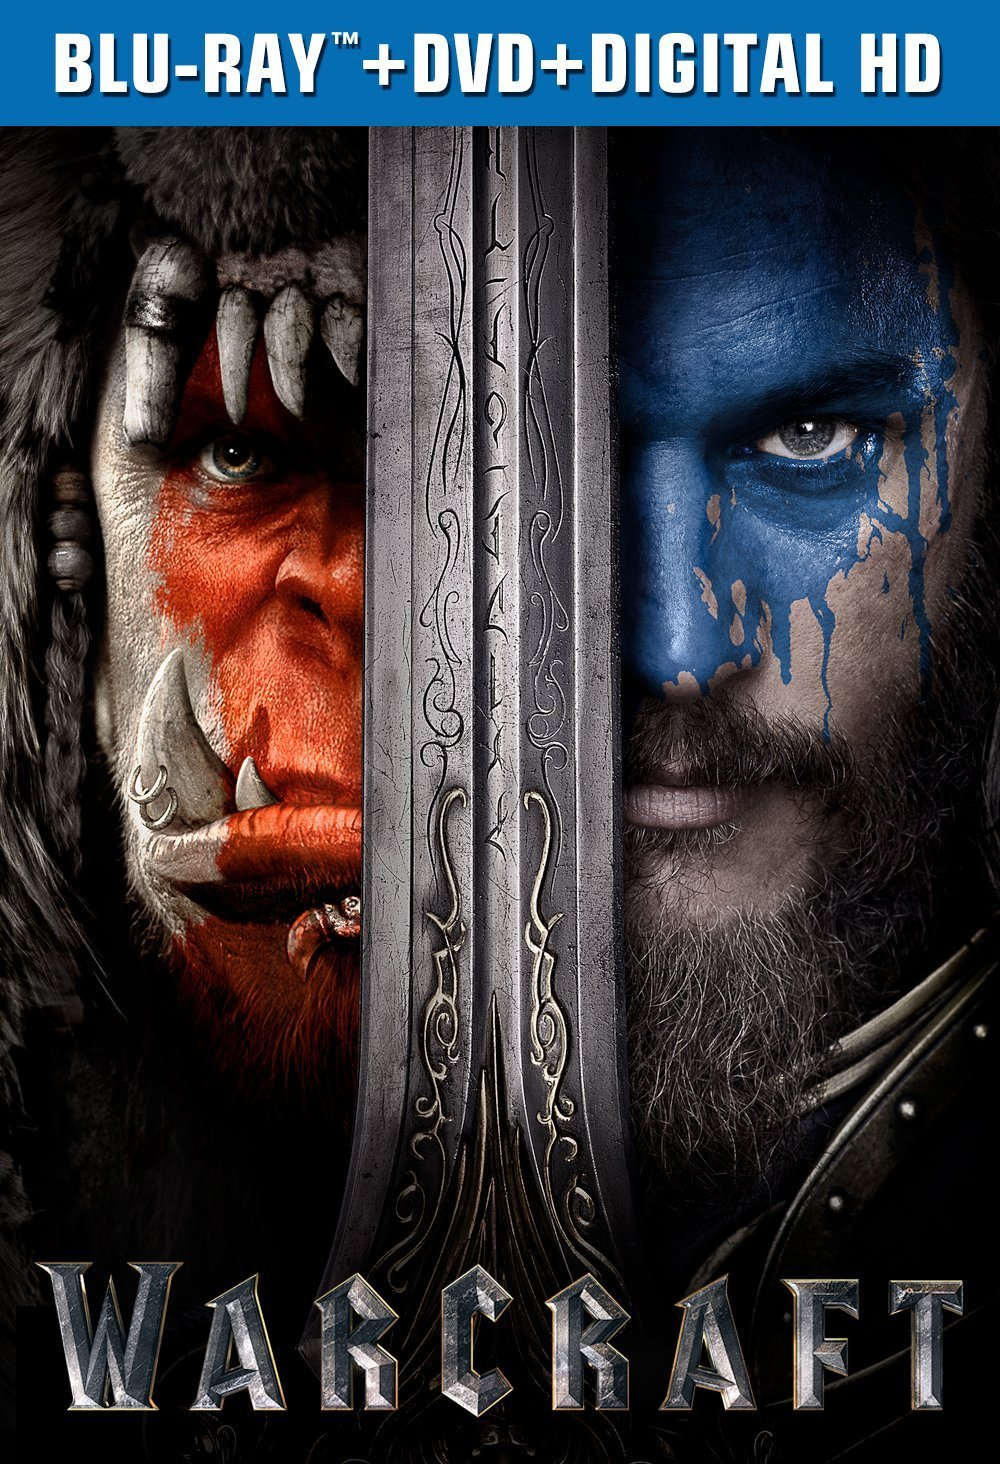 watch the warcraft movie hd digital today on pc/mobile - blizzplanet